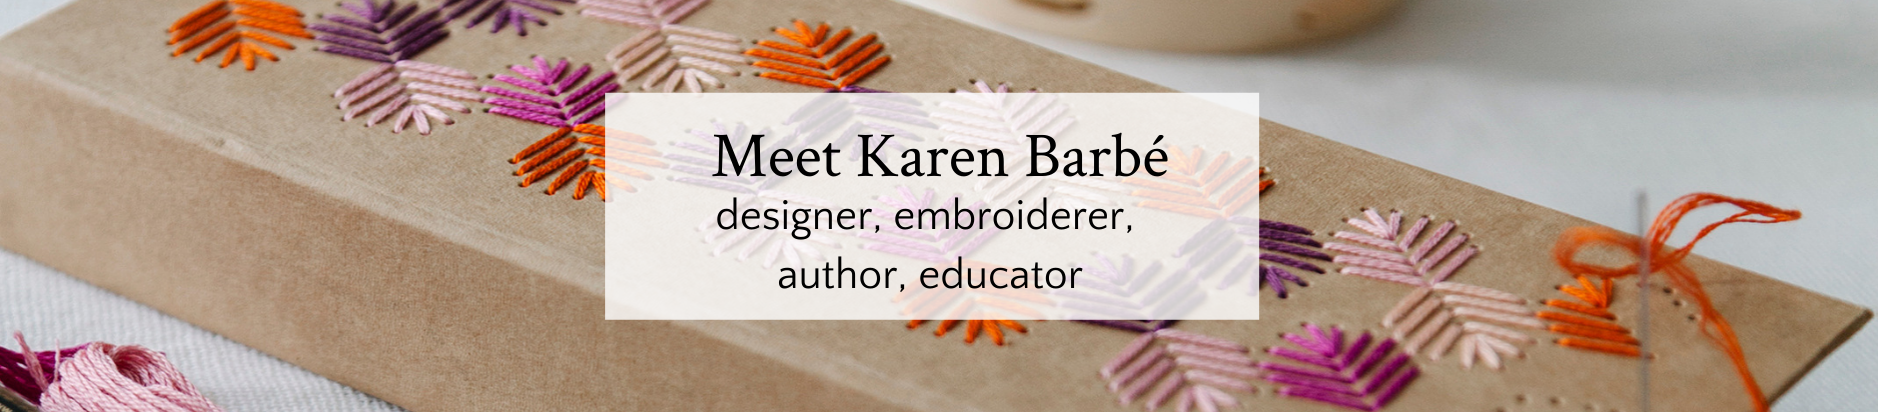 Embroidered pencil case from Karen Barbe